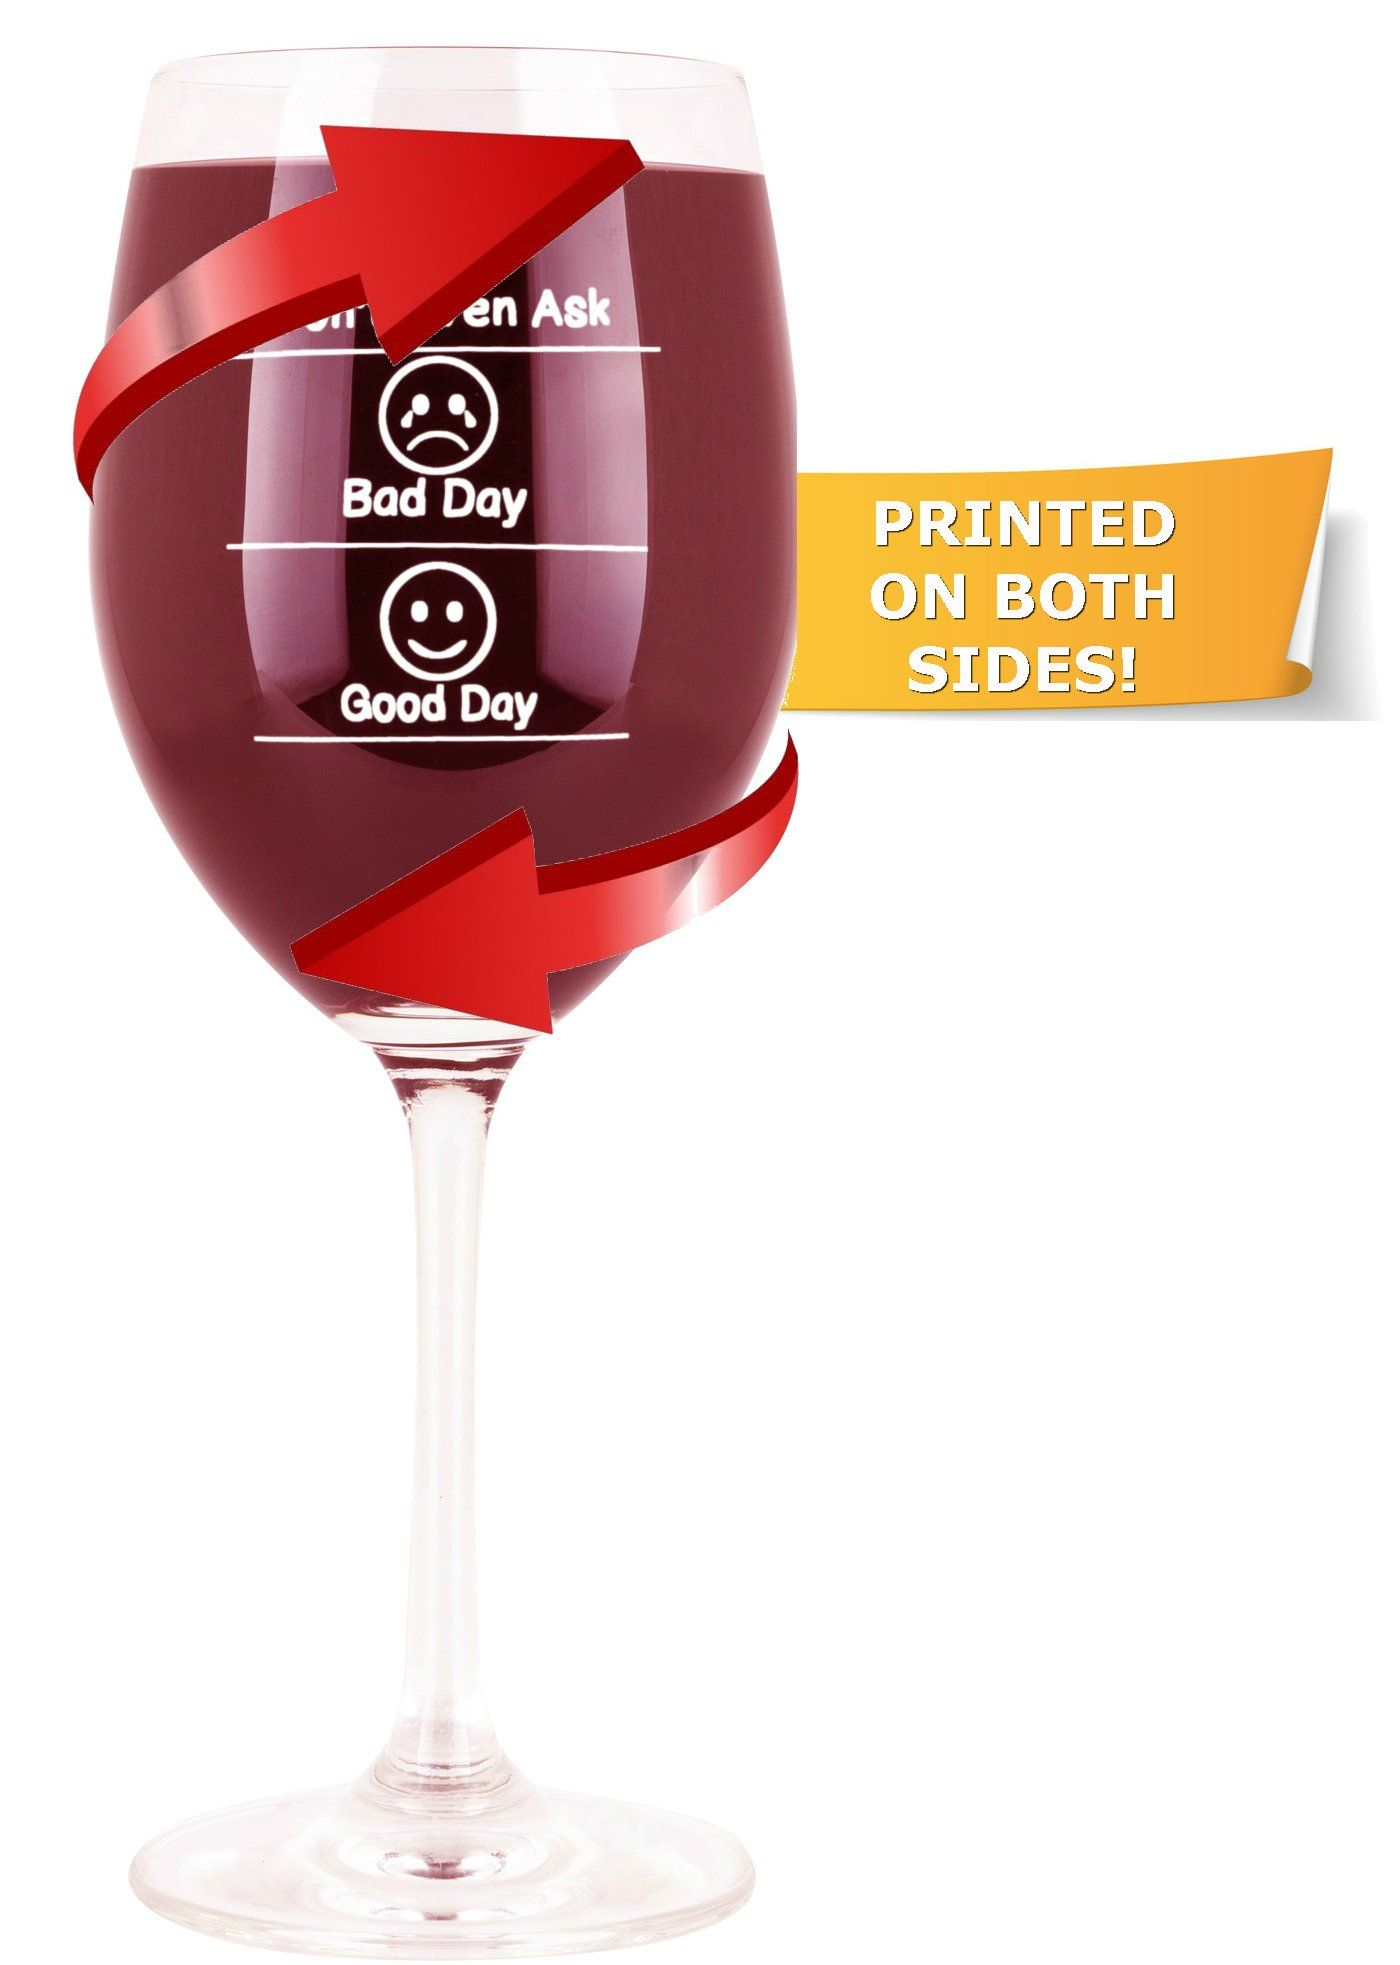 Whimsical Gift World Funny Wine Glass 19 Oz With Emoji Faces Dona T Even Ask Good Day Bad Day Novelty Gag Funny Wine Glass Fun Wine Glasses Wine Celebration